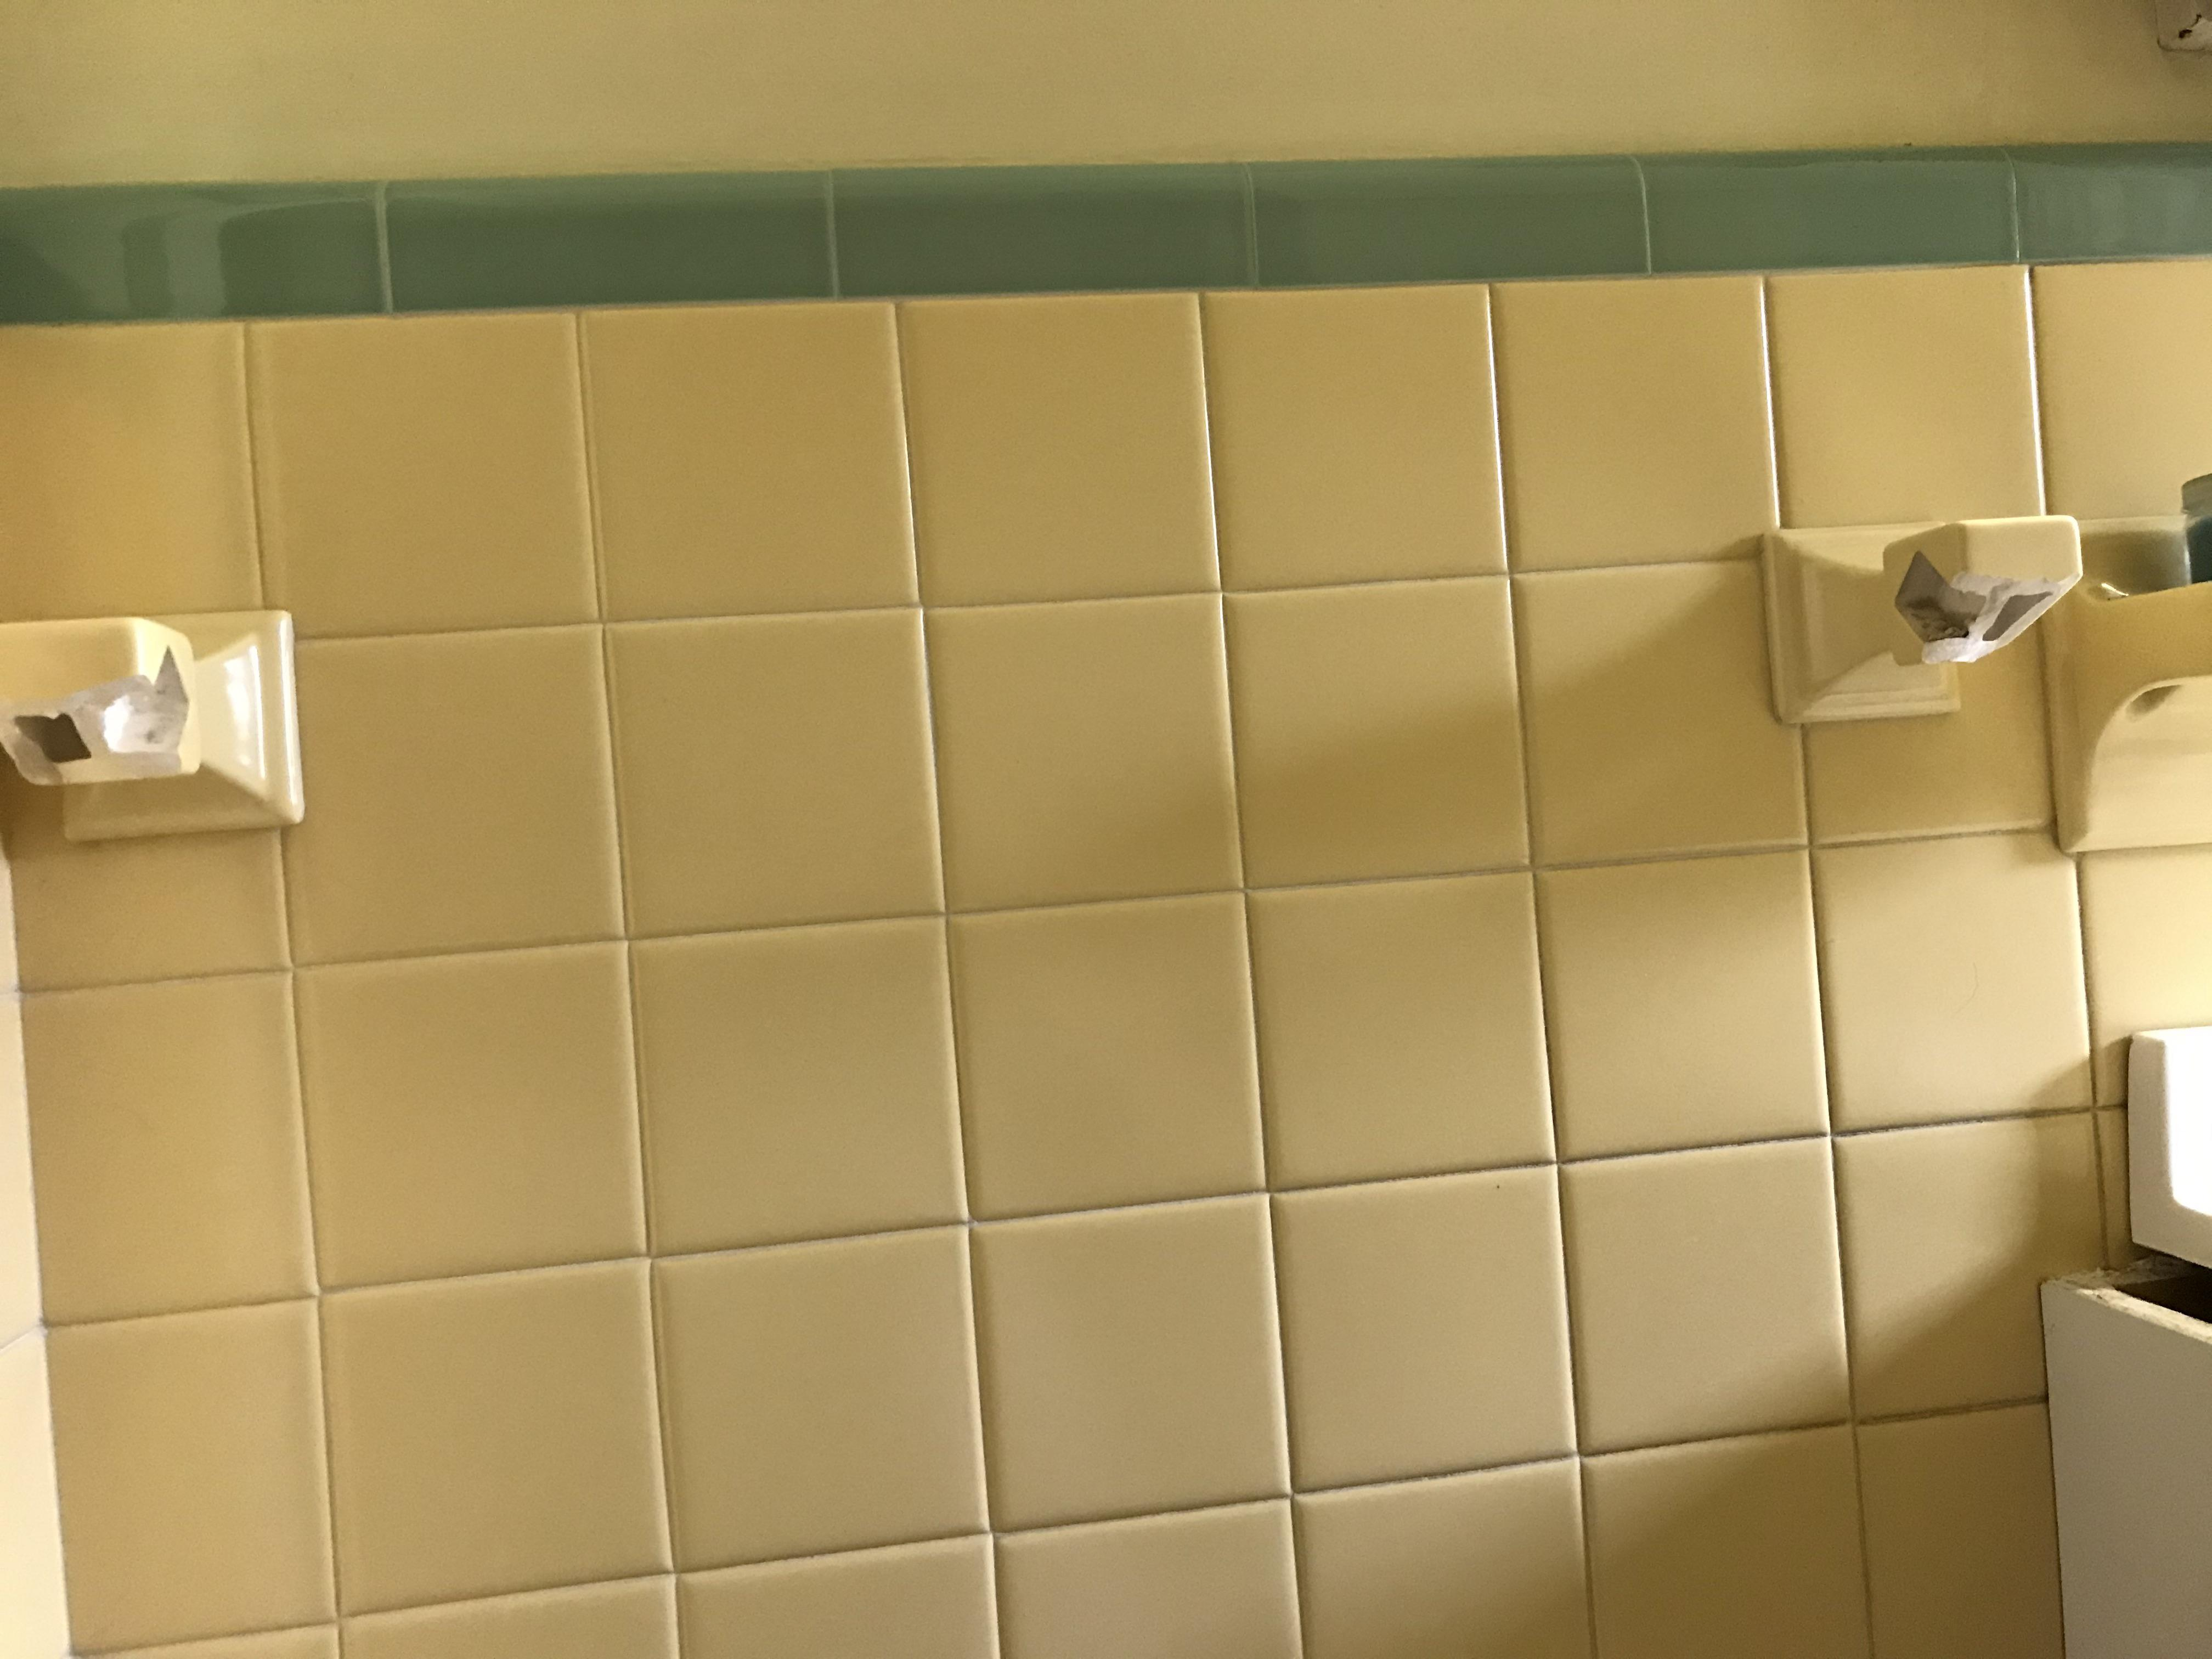 how can i replace this broken towel bar